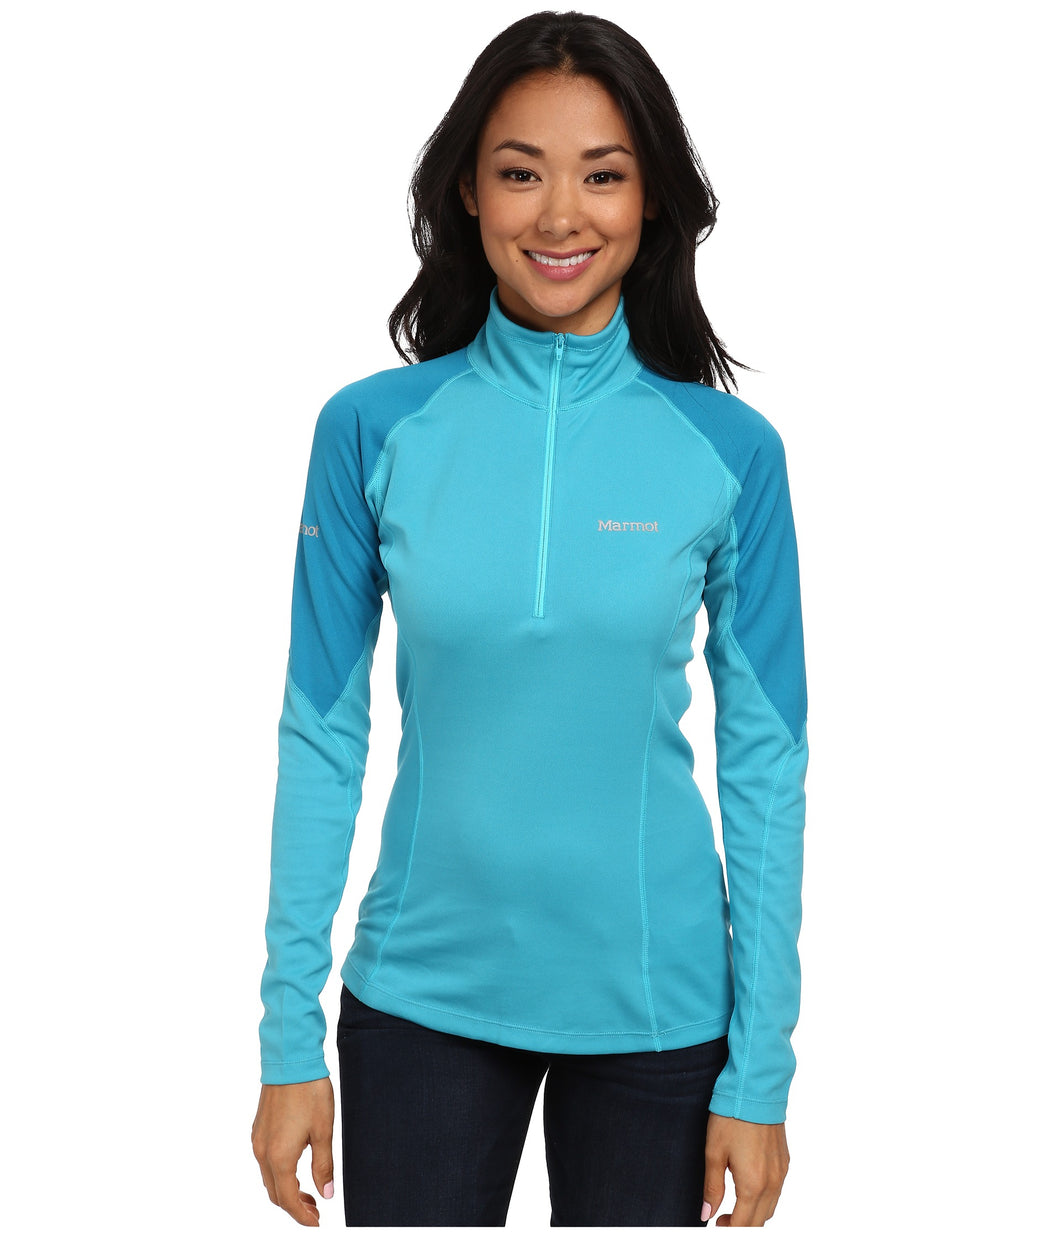 Women's ThermalClime Pro 1/2 Zip by Marmot